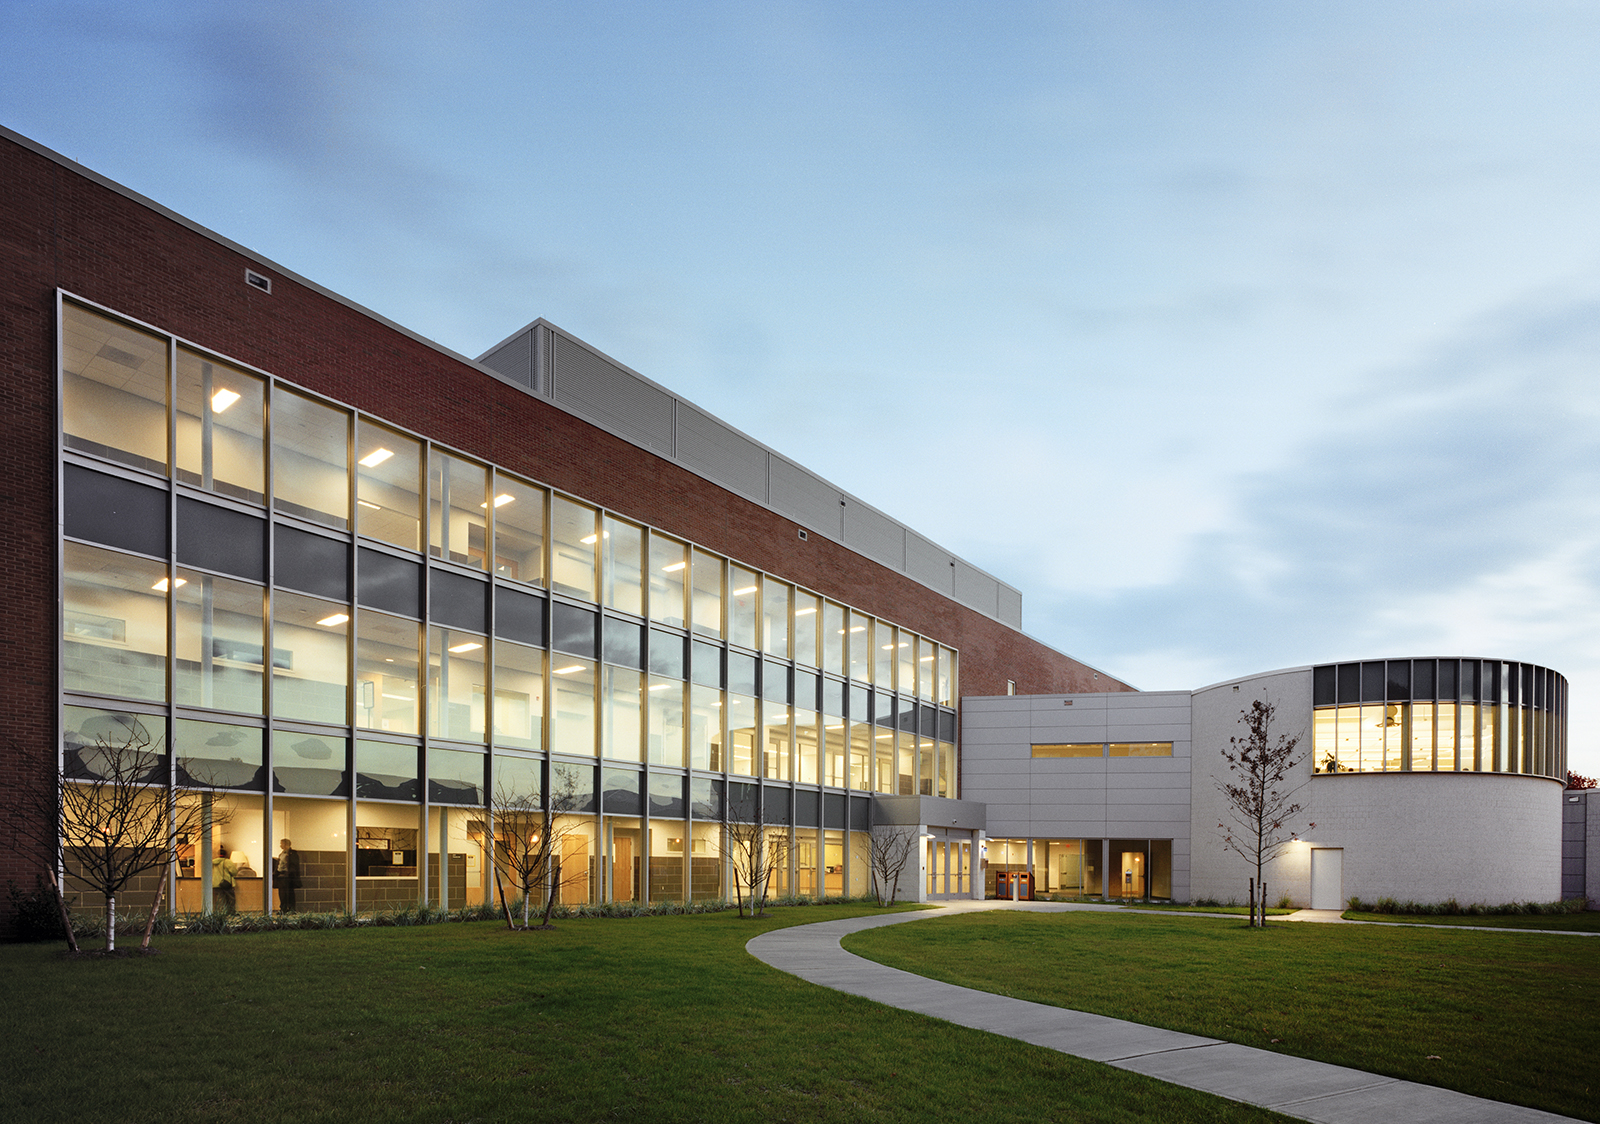 The Technology Center at Rockland Community College in New York